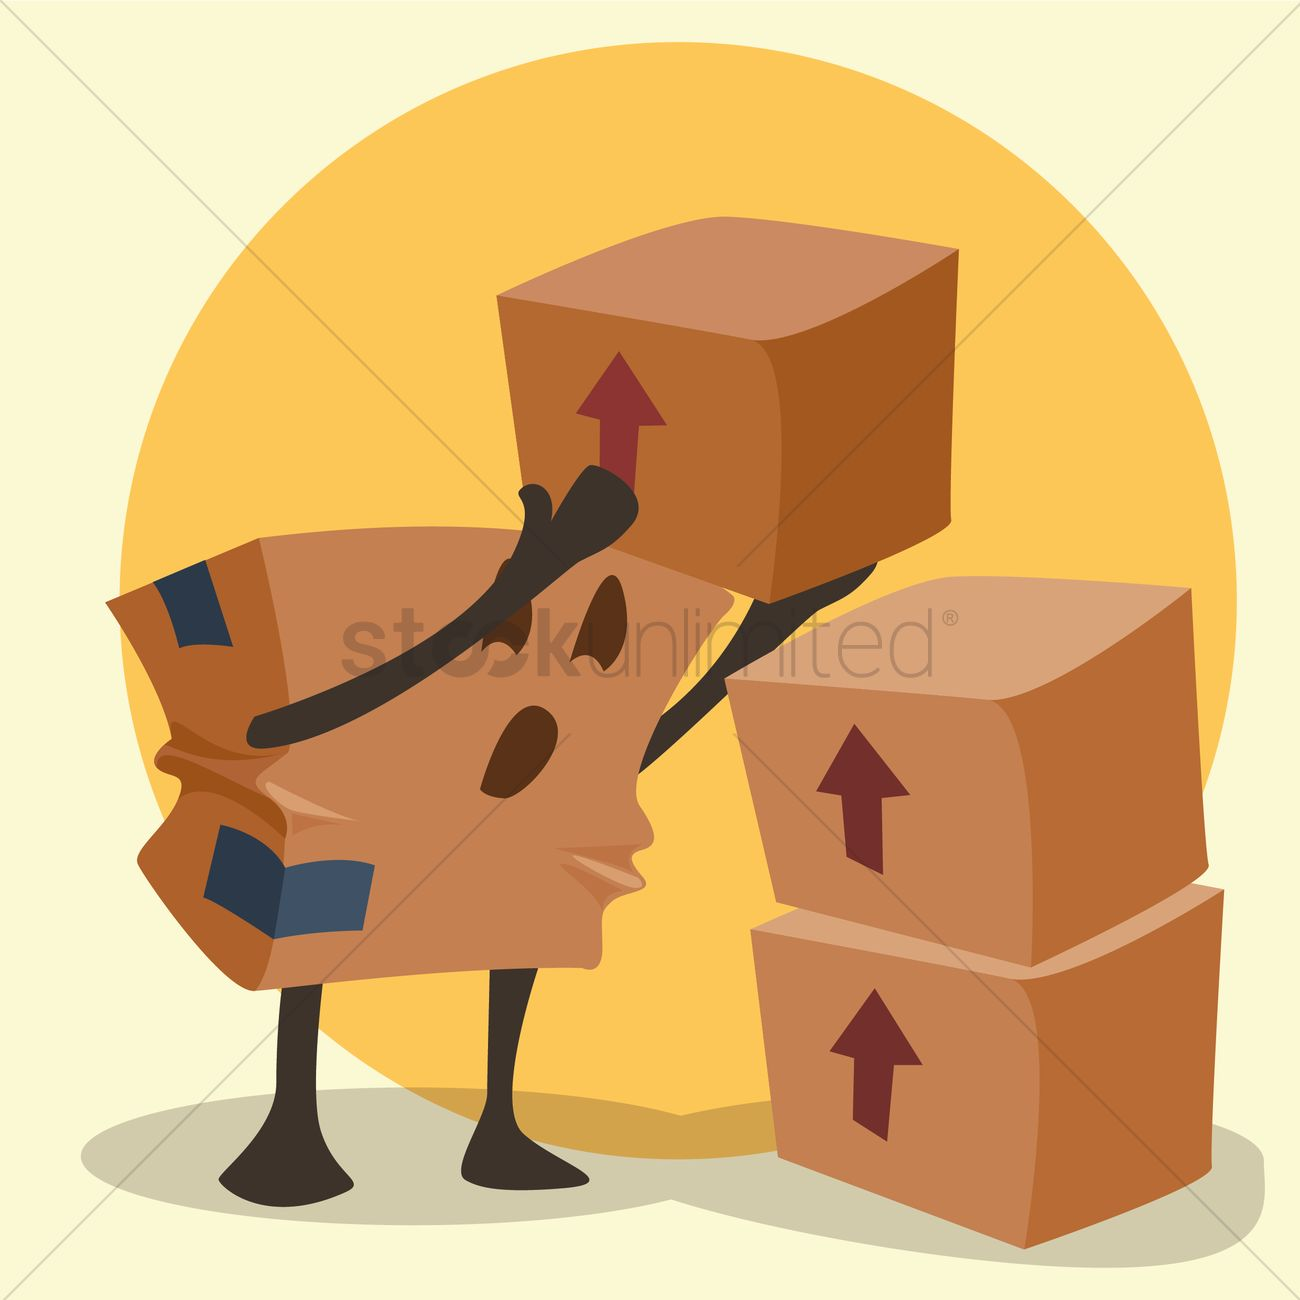 Cardboard box cartoon stacking up parcels vector image 1426420 cardboard box cartoon stacking up parcels vector graphic biocorpaavc Choice Image